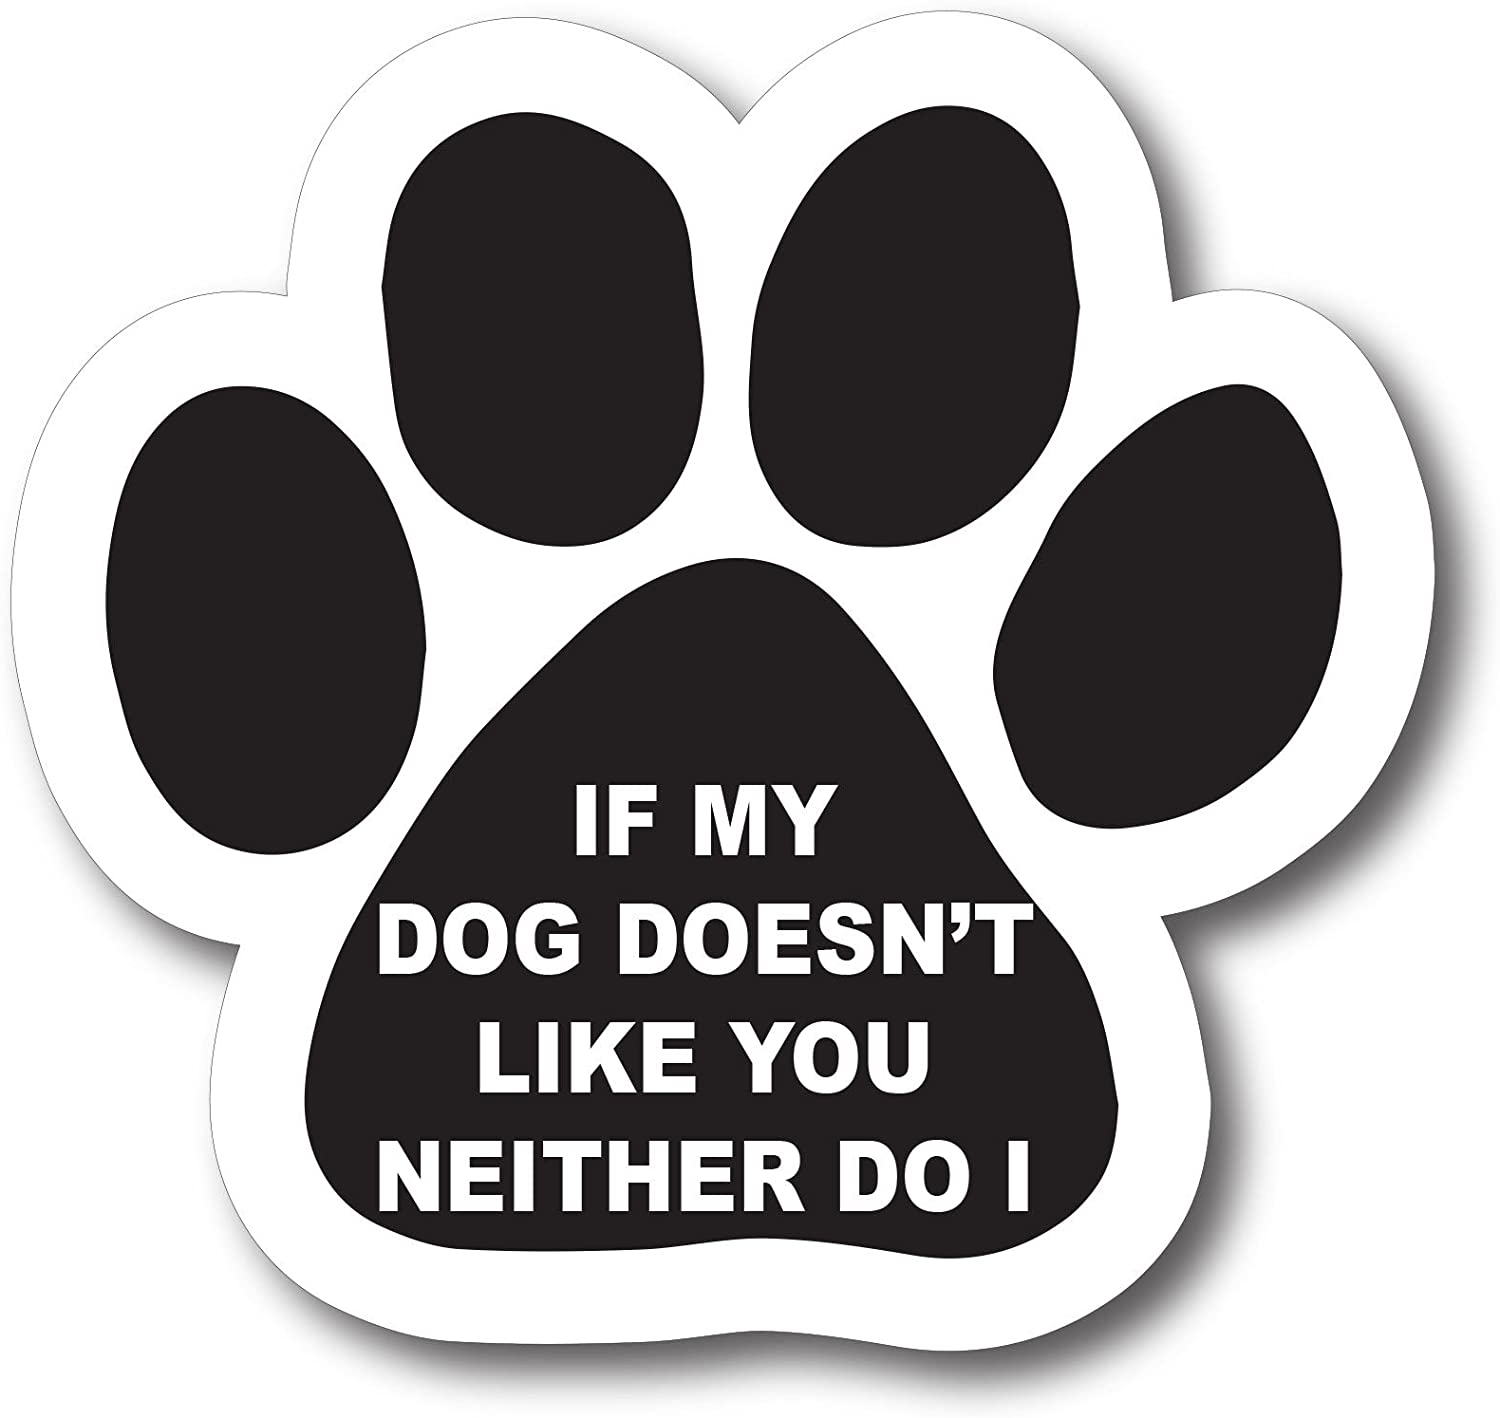 Magnet Me Up If My Dog Doesn't Like You Neither Do I Pawprint Car Magnet Paw Print Auto Truck Decal Magnet